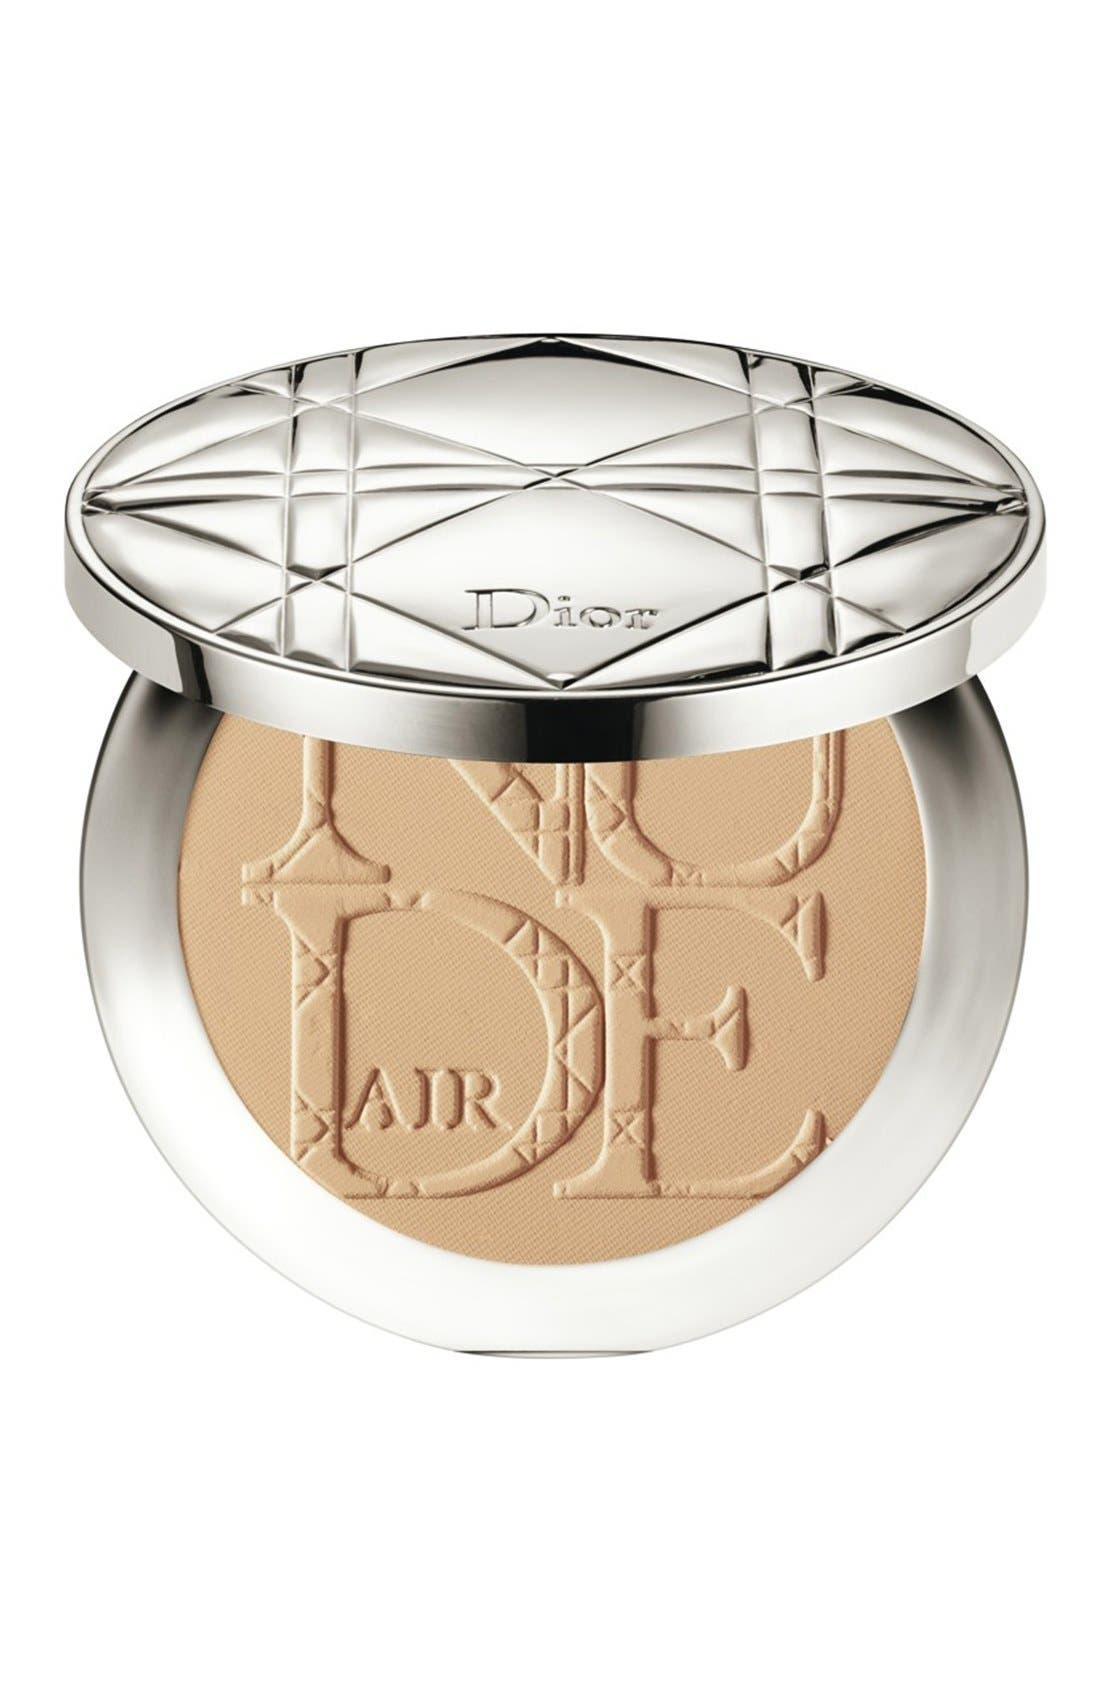 Dior 'Diorskin Nude Air' Healthy Glow Invisible Powder